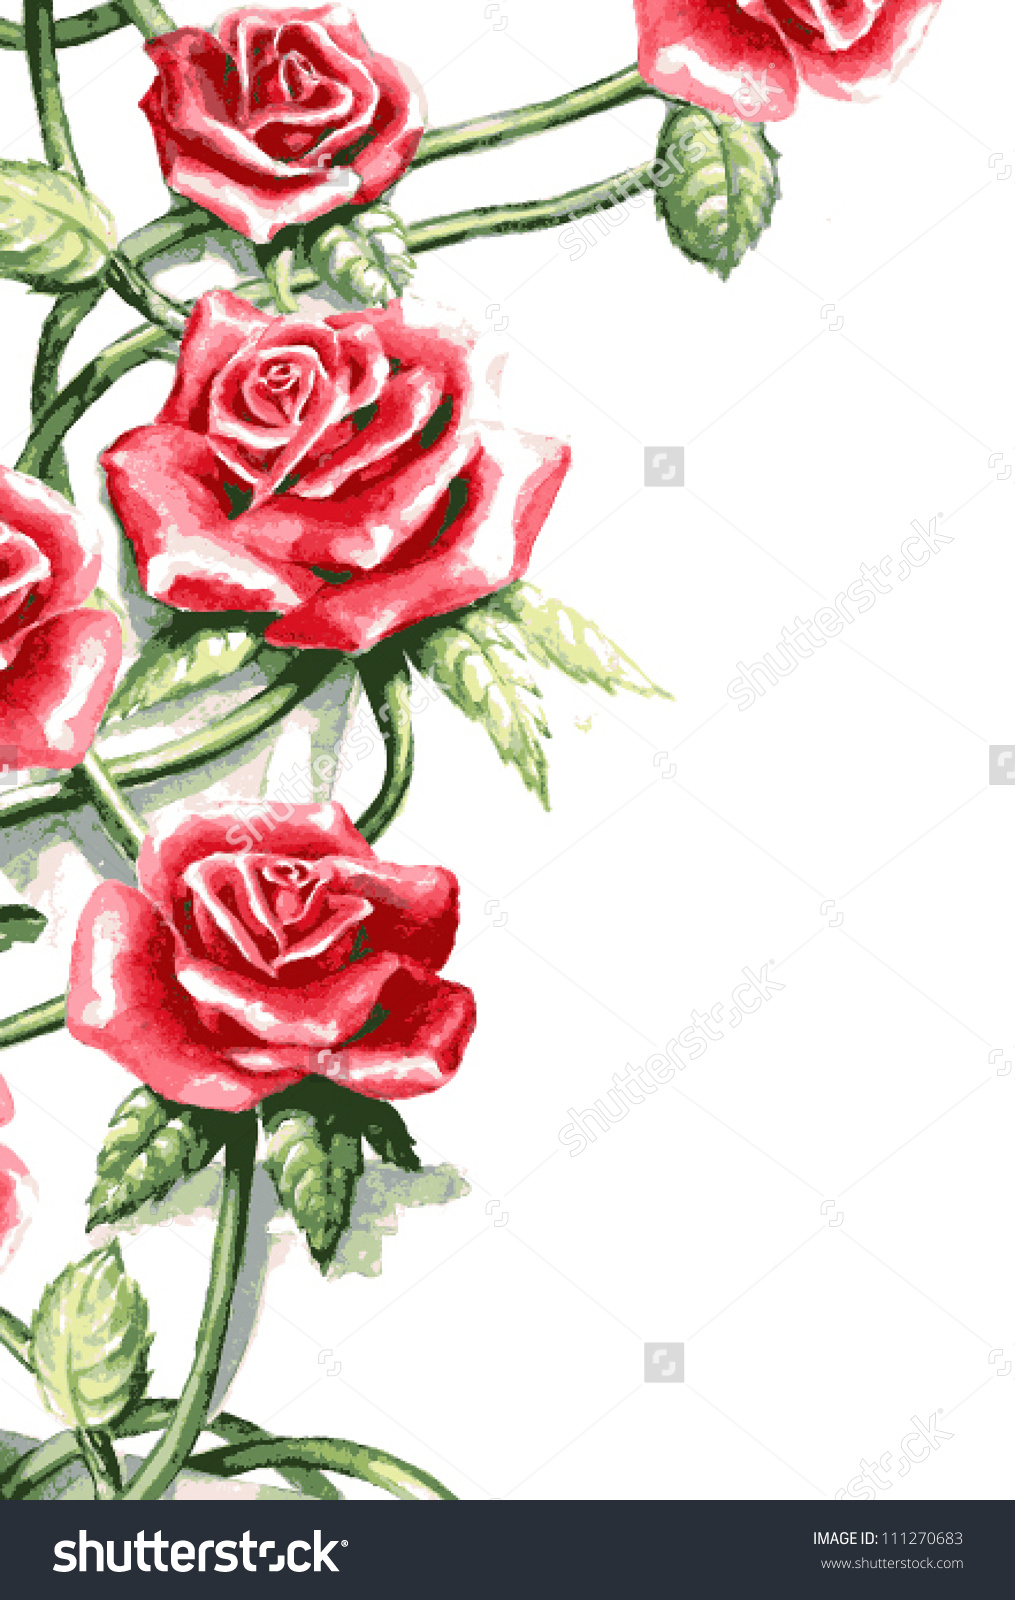 rose flowers clip art black and white